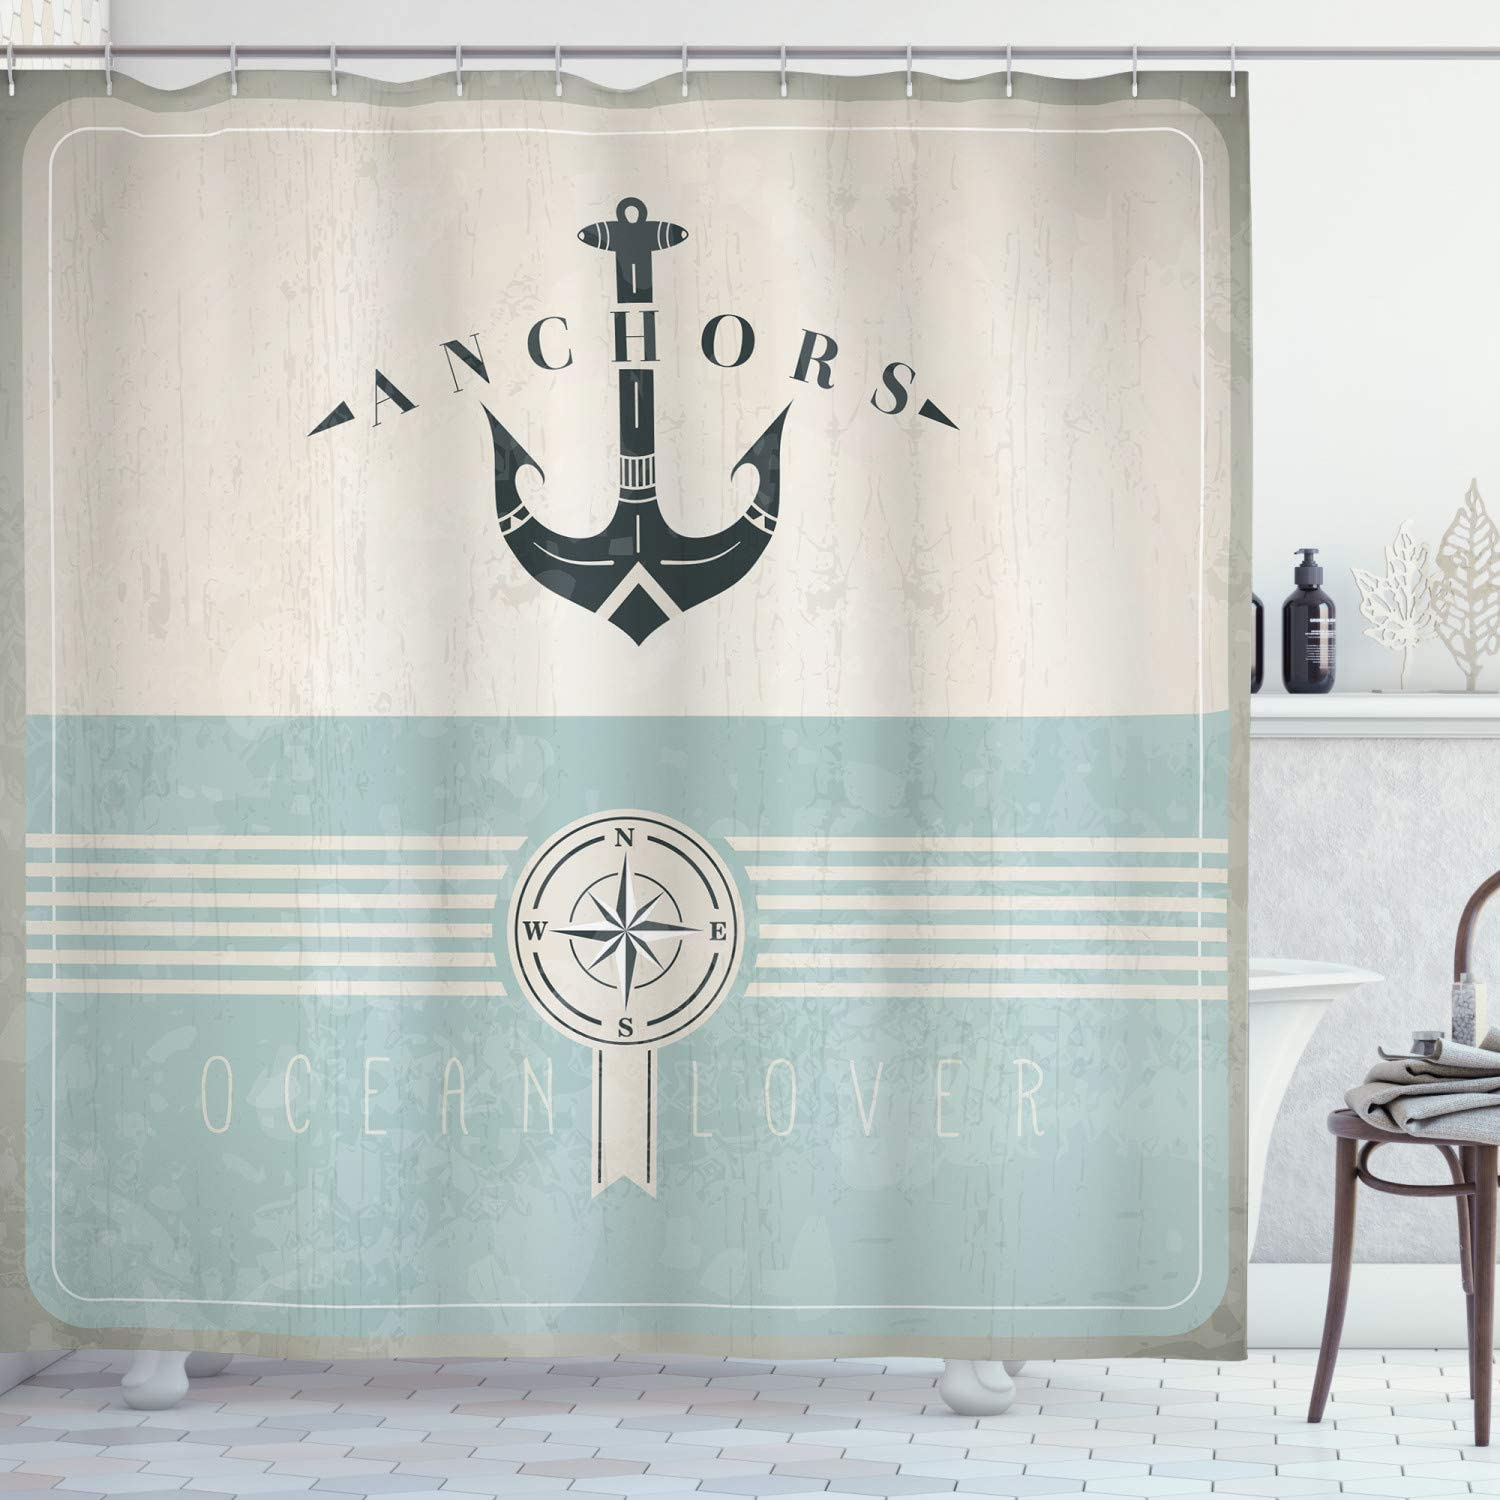 Ambesonne Nautical Shower Curtain, Aged Ocean Lover Phrase with Anchor and Compass Marine Adventure Design, Cloth Fabric Bathroom Decor Set with Hooks, 75